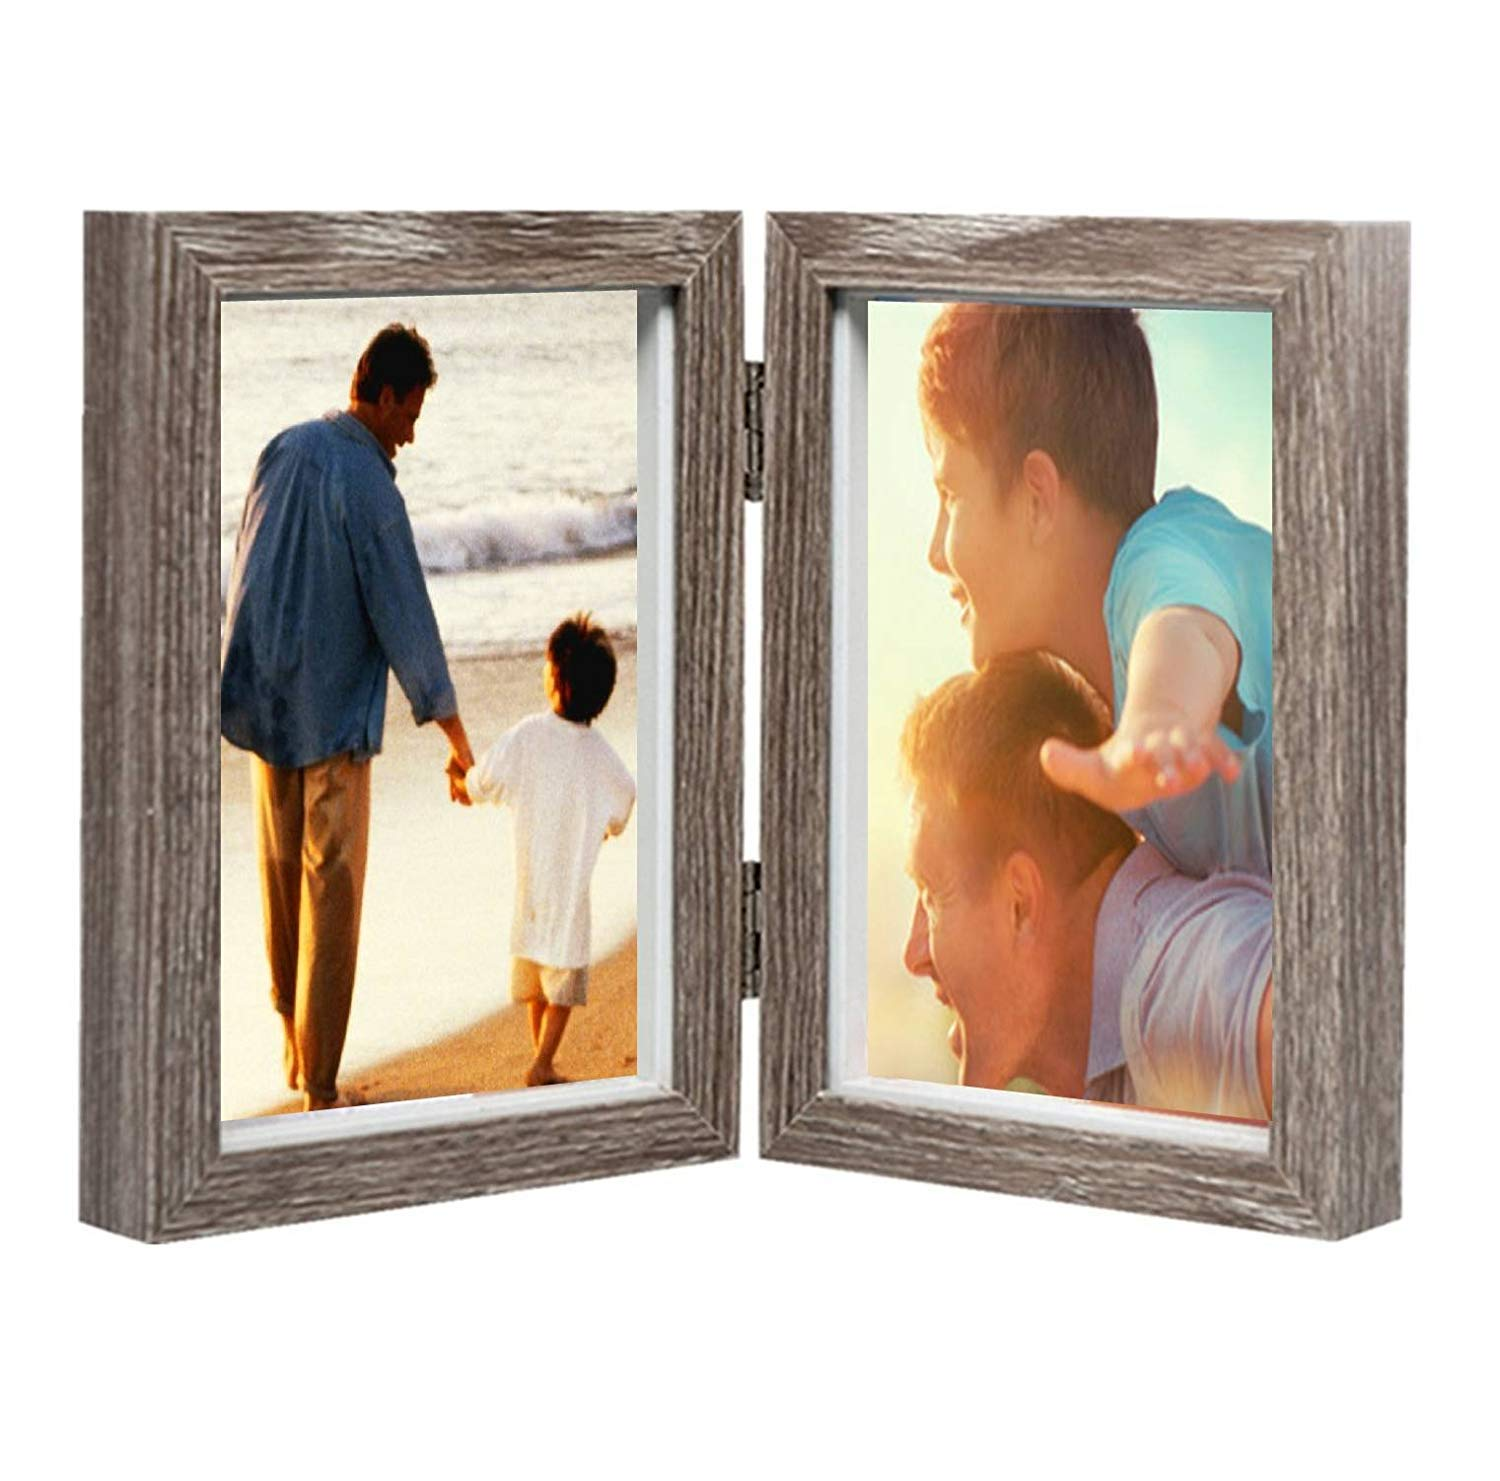 AlexBasic Wood Picture Frame Double 4x6 Hinged Picture Frame Desktop Photo Frame with Glass Front Dual Frame (Gray) by AlexBasic